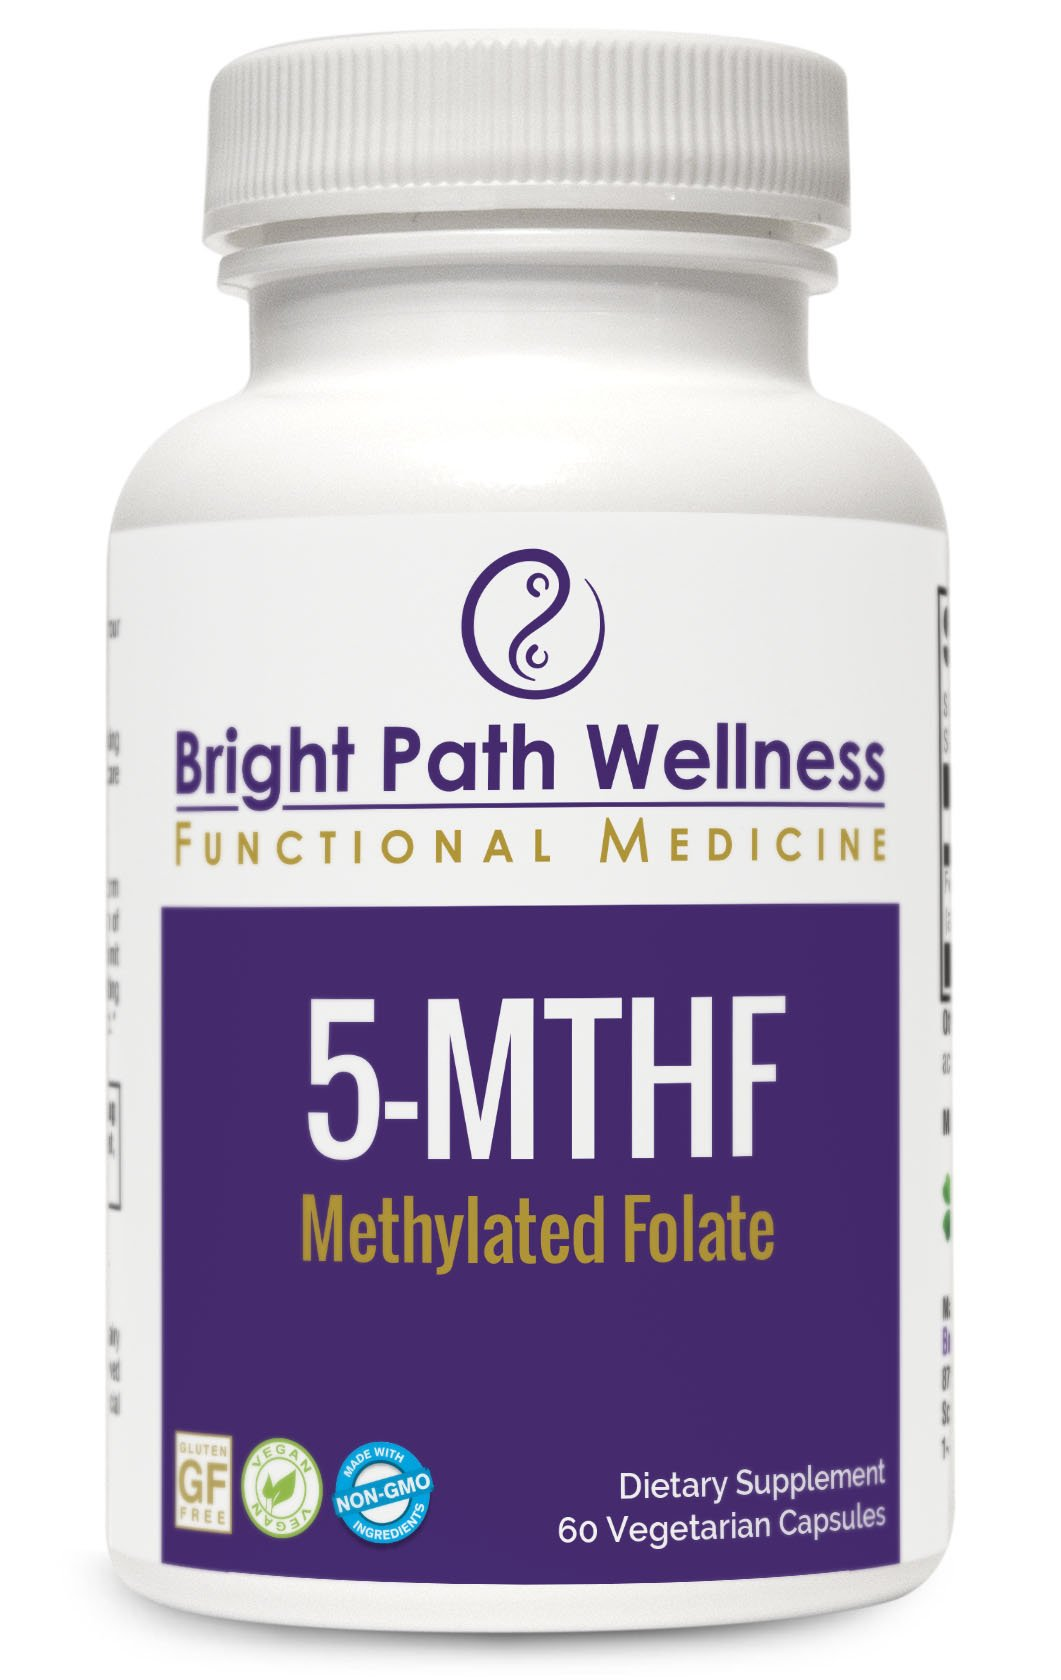 5-MTHF - 60 Capsules - 30 Servings, Non GMO, Gluten Free, Folate 2,000 mcg as 6(S)-5-methyltetrahydrofolic acid, glucosamine salt, Bioactive Folate as Quatrefolic, cGMP, Activated B Vitamins